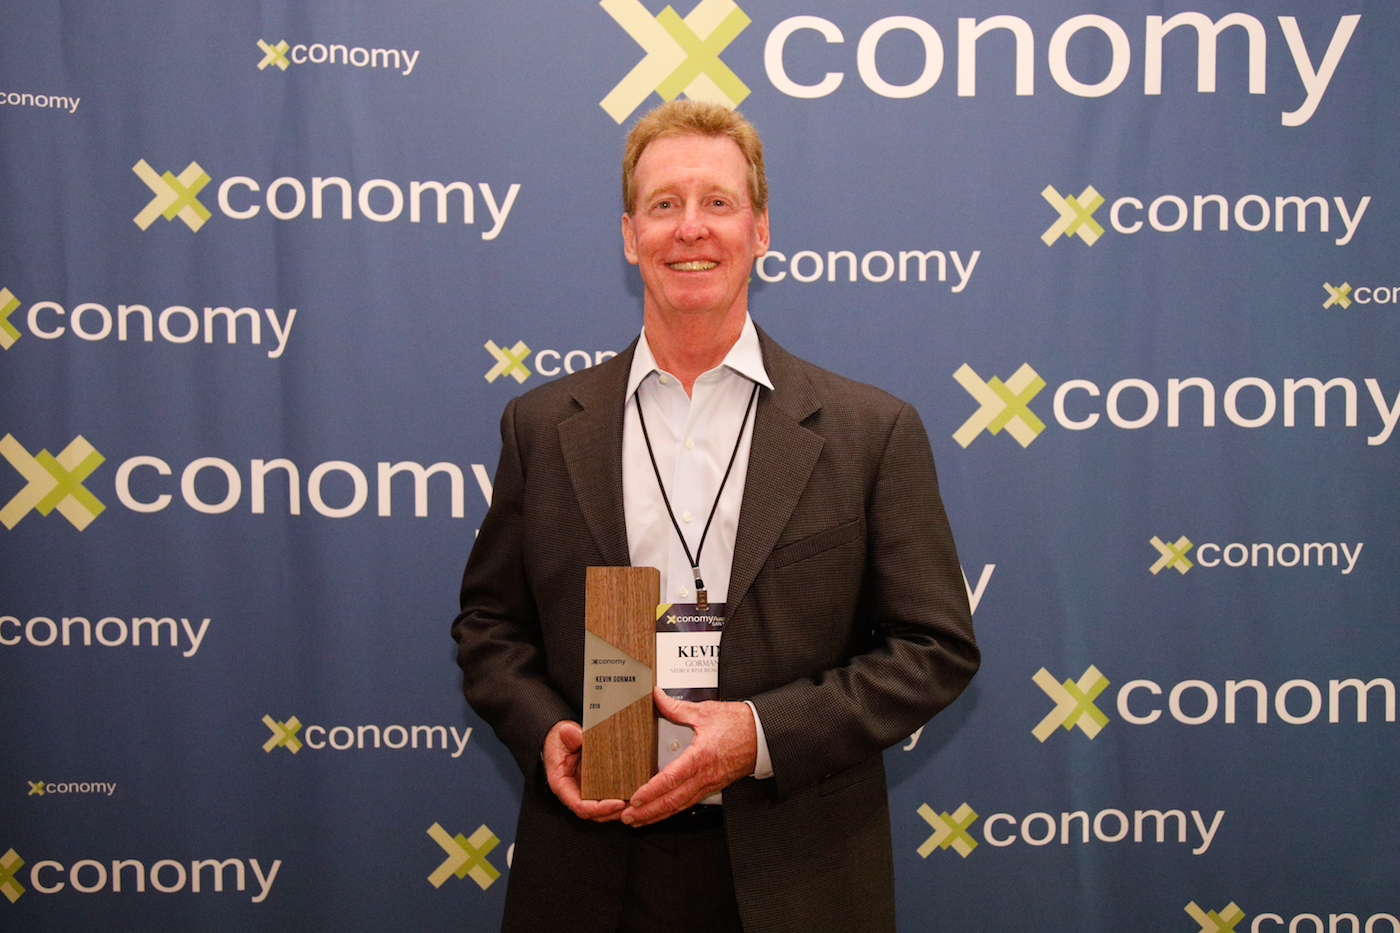 Kevin Gorman, CEO Award Winner